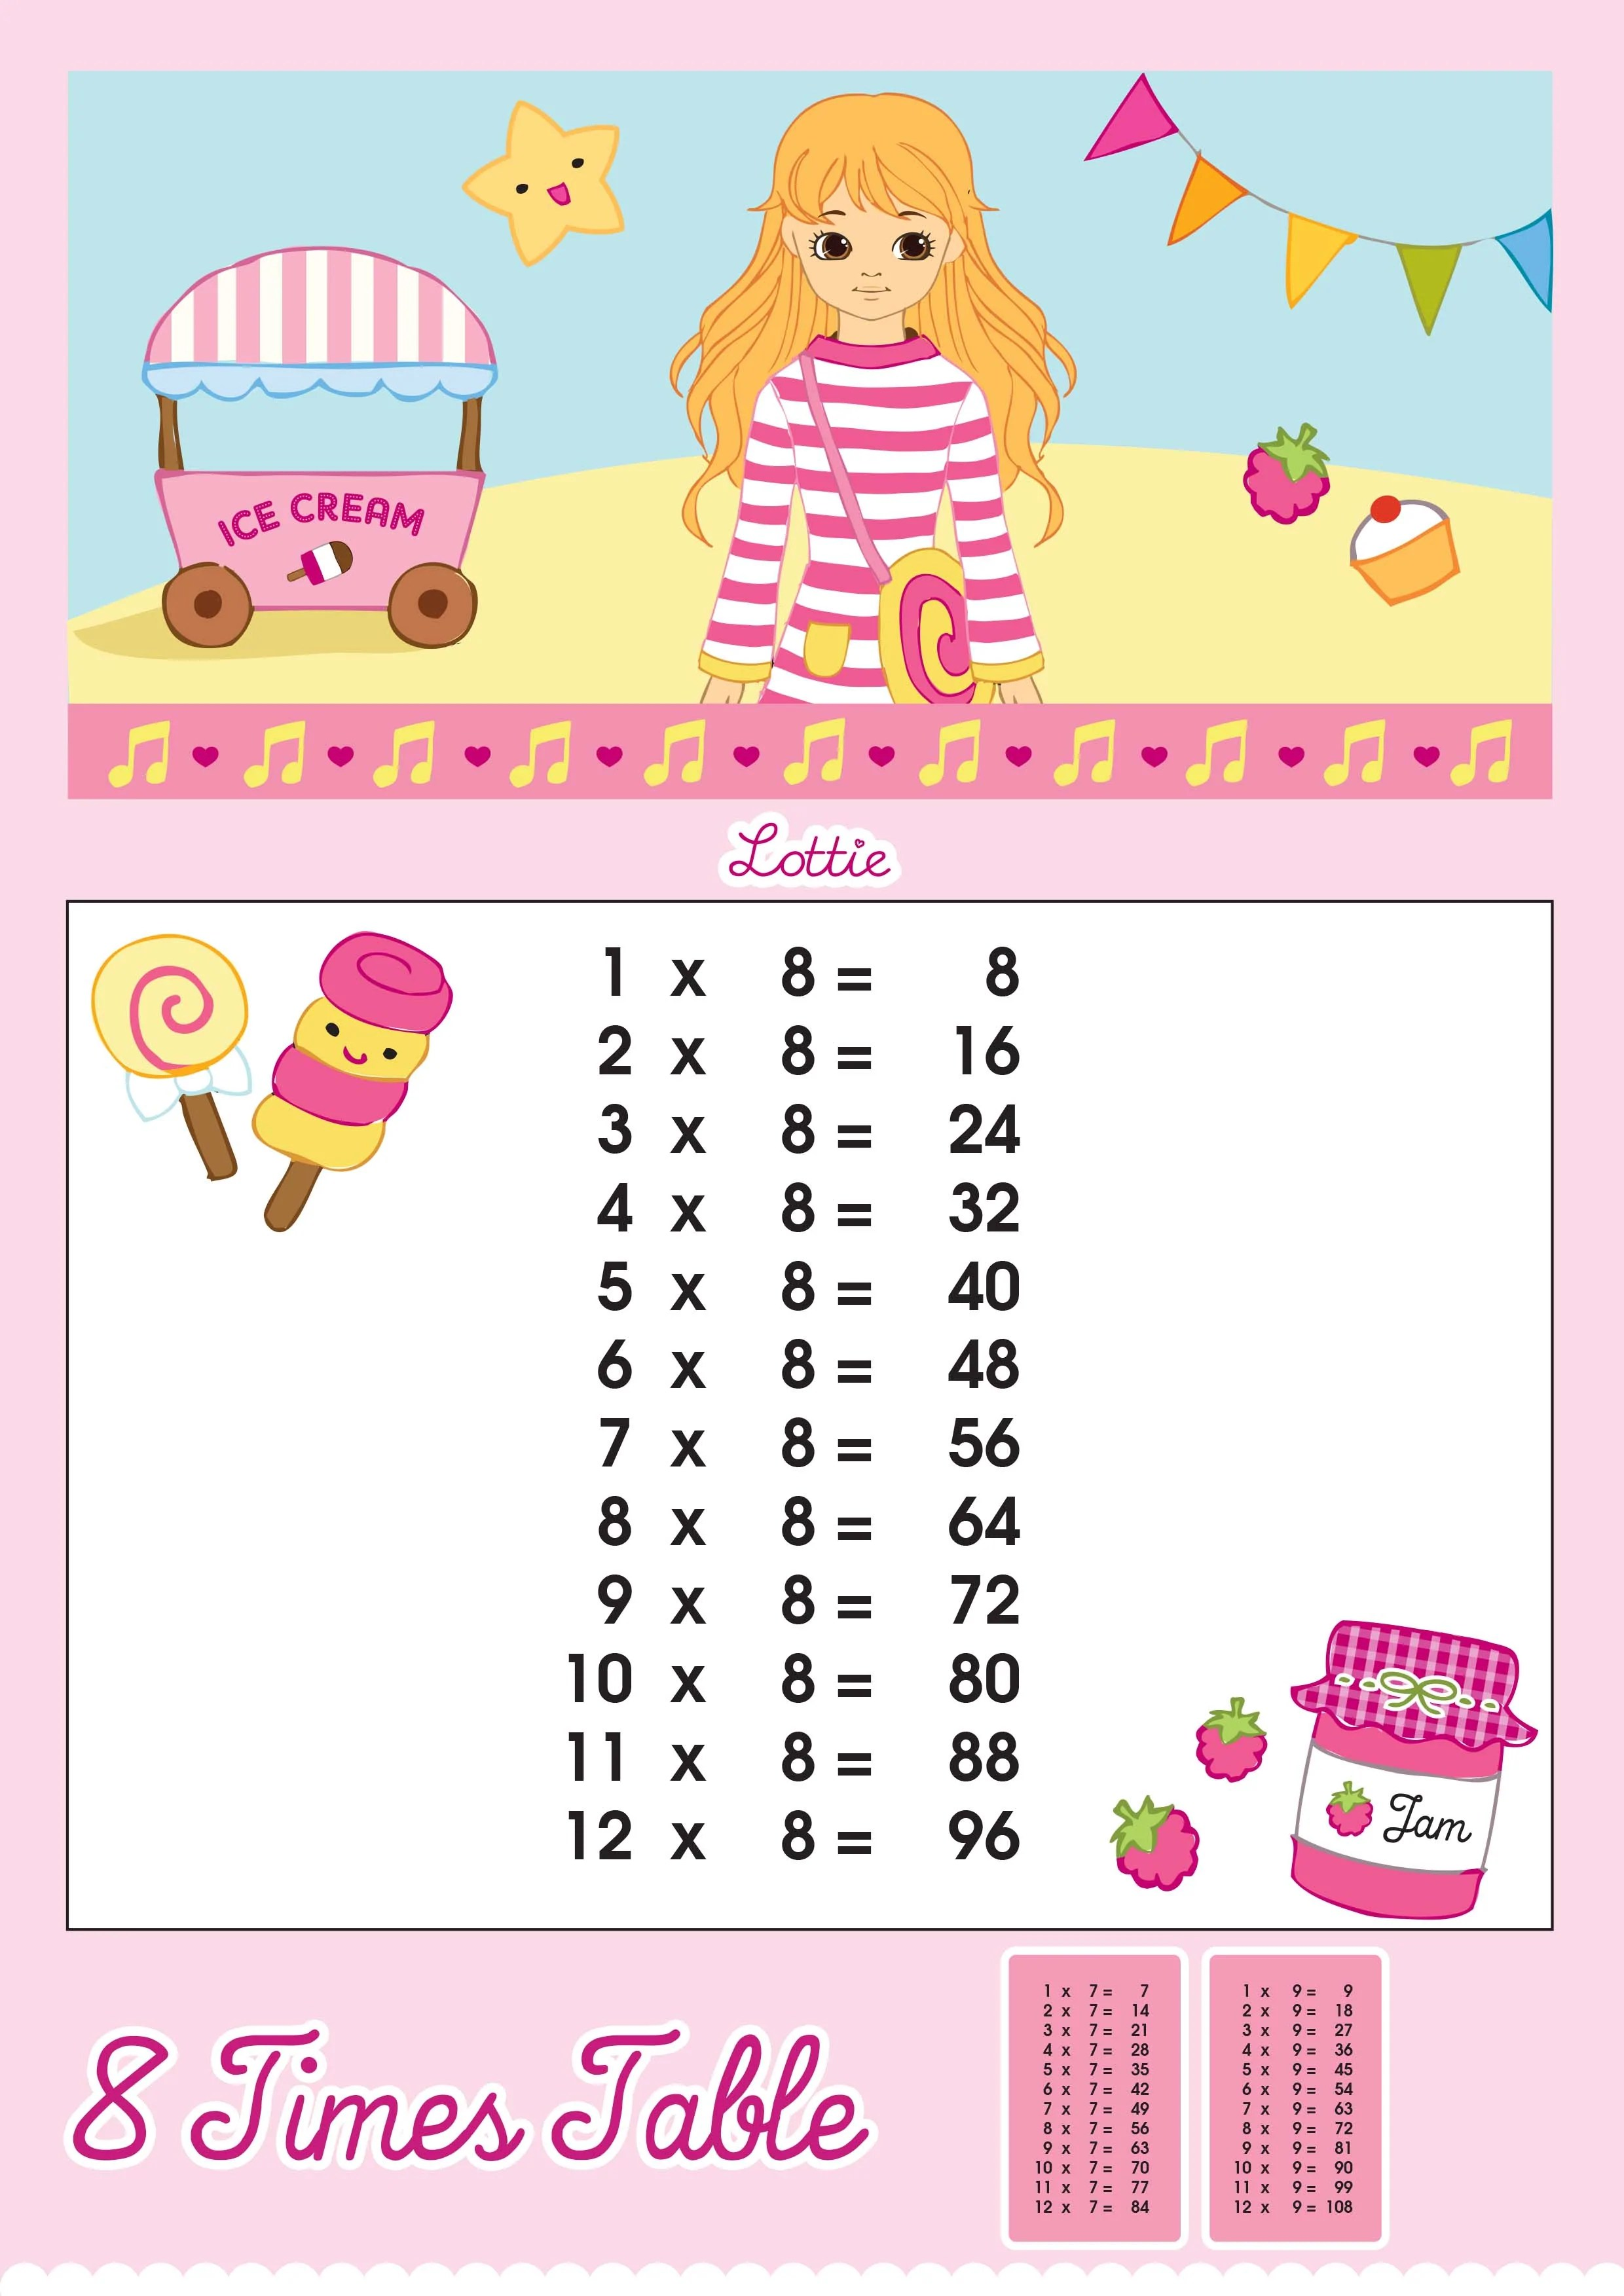 3 X 8 Table 8 Times Table Printable Chart Lottie Dolls